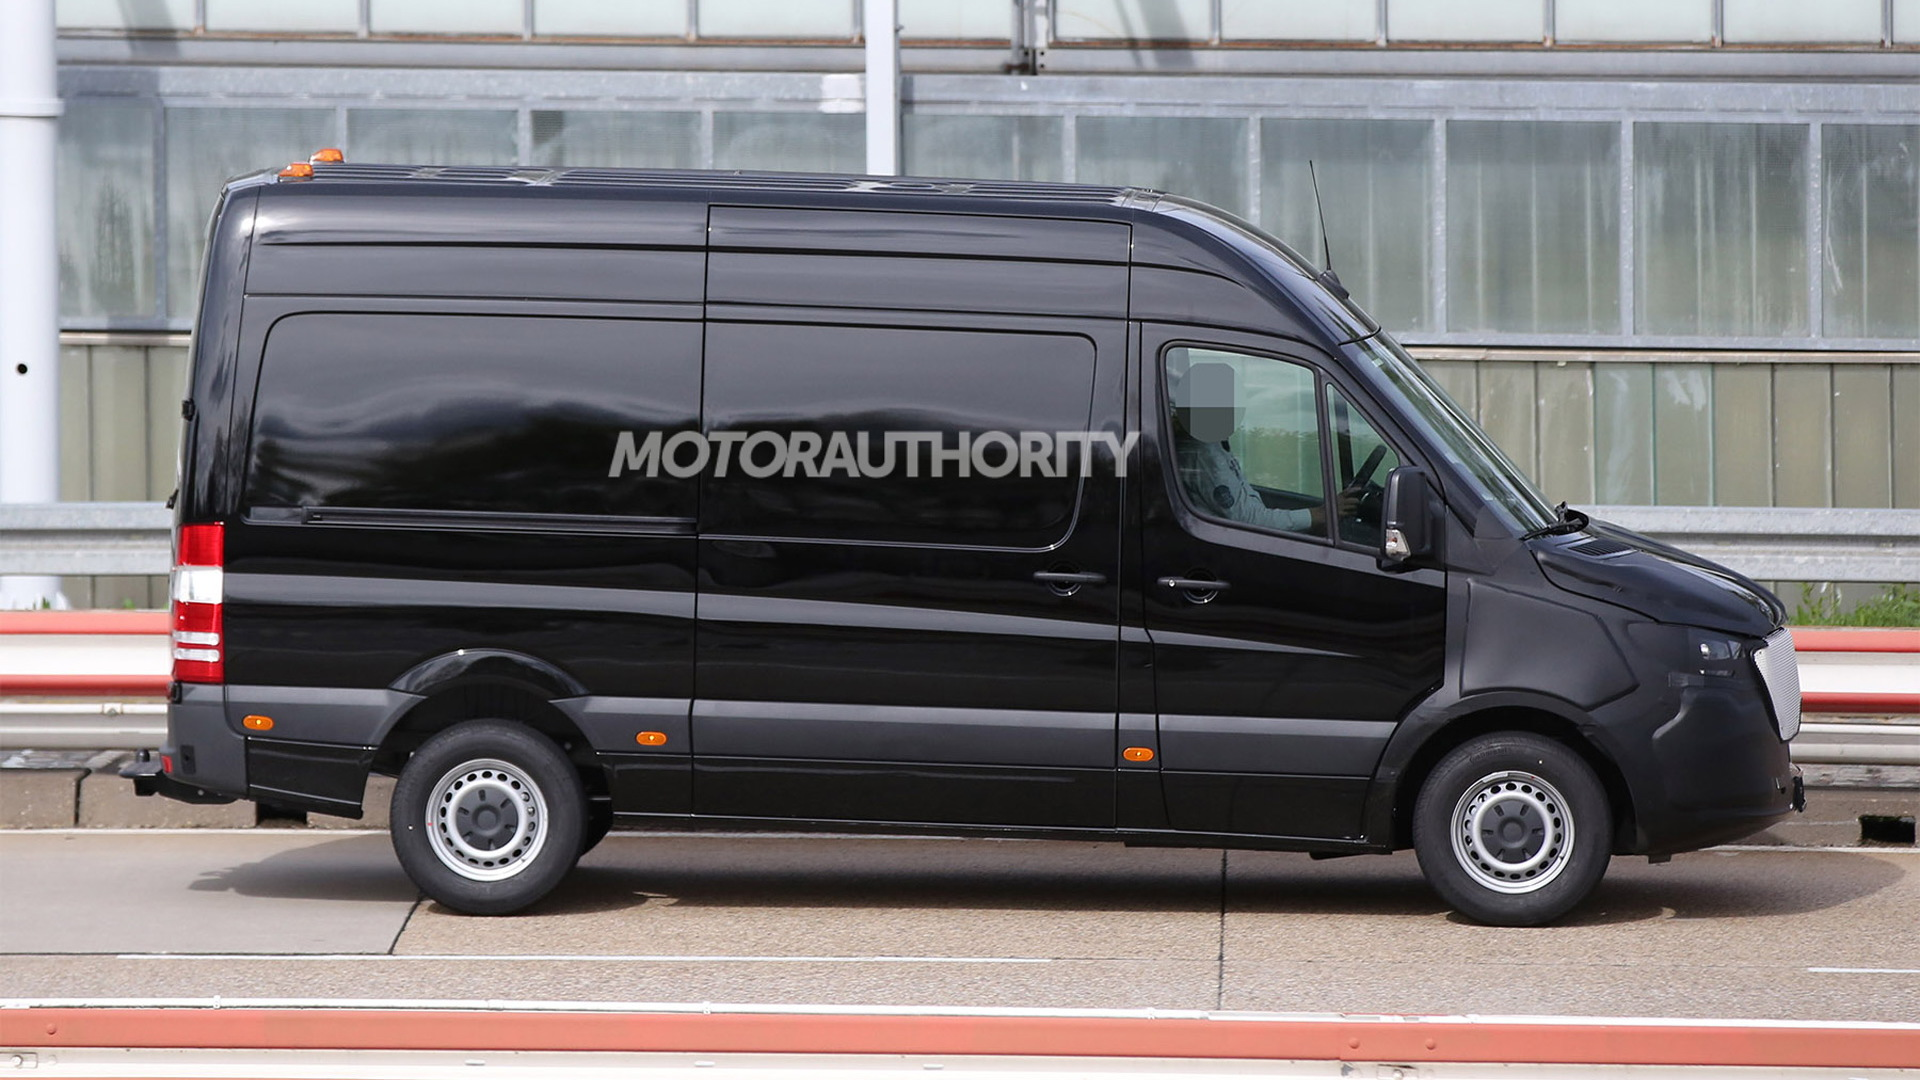 2019 Mercedes-Benz Sprinter test mule spy shots - Image via S. Baldauf/SB-Medien